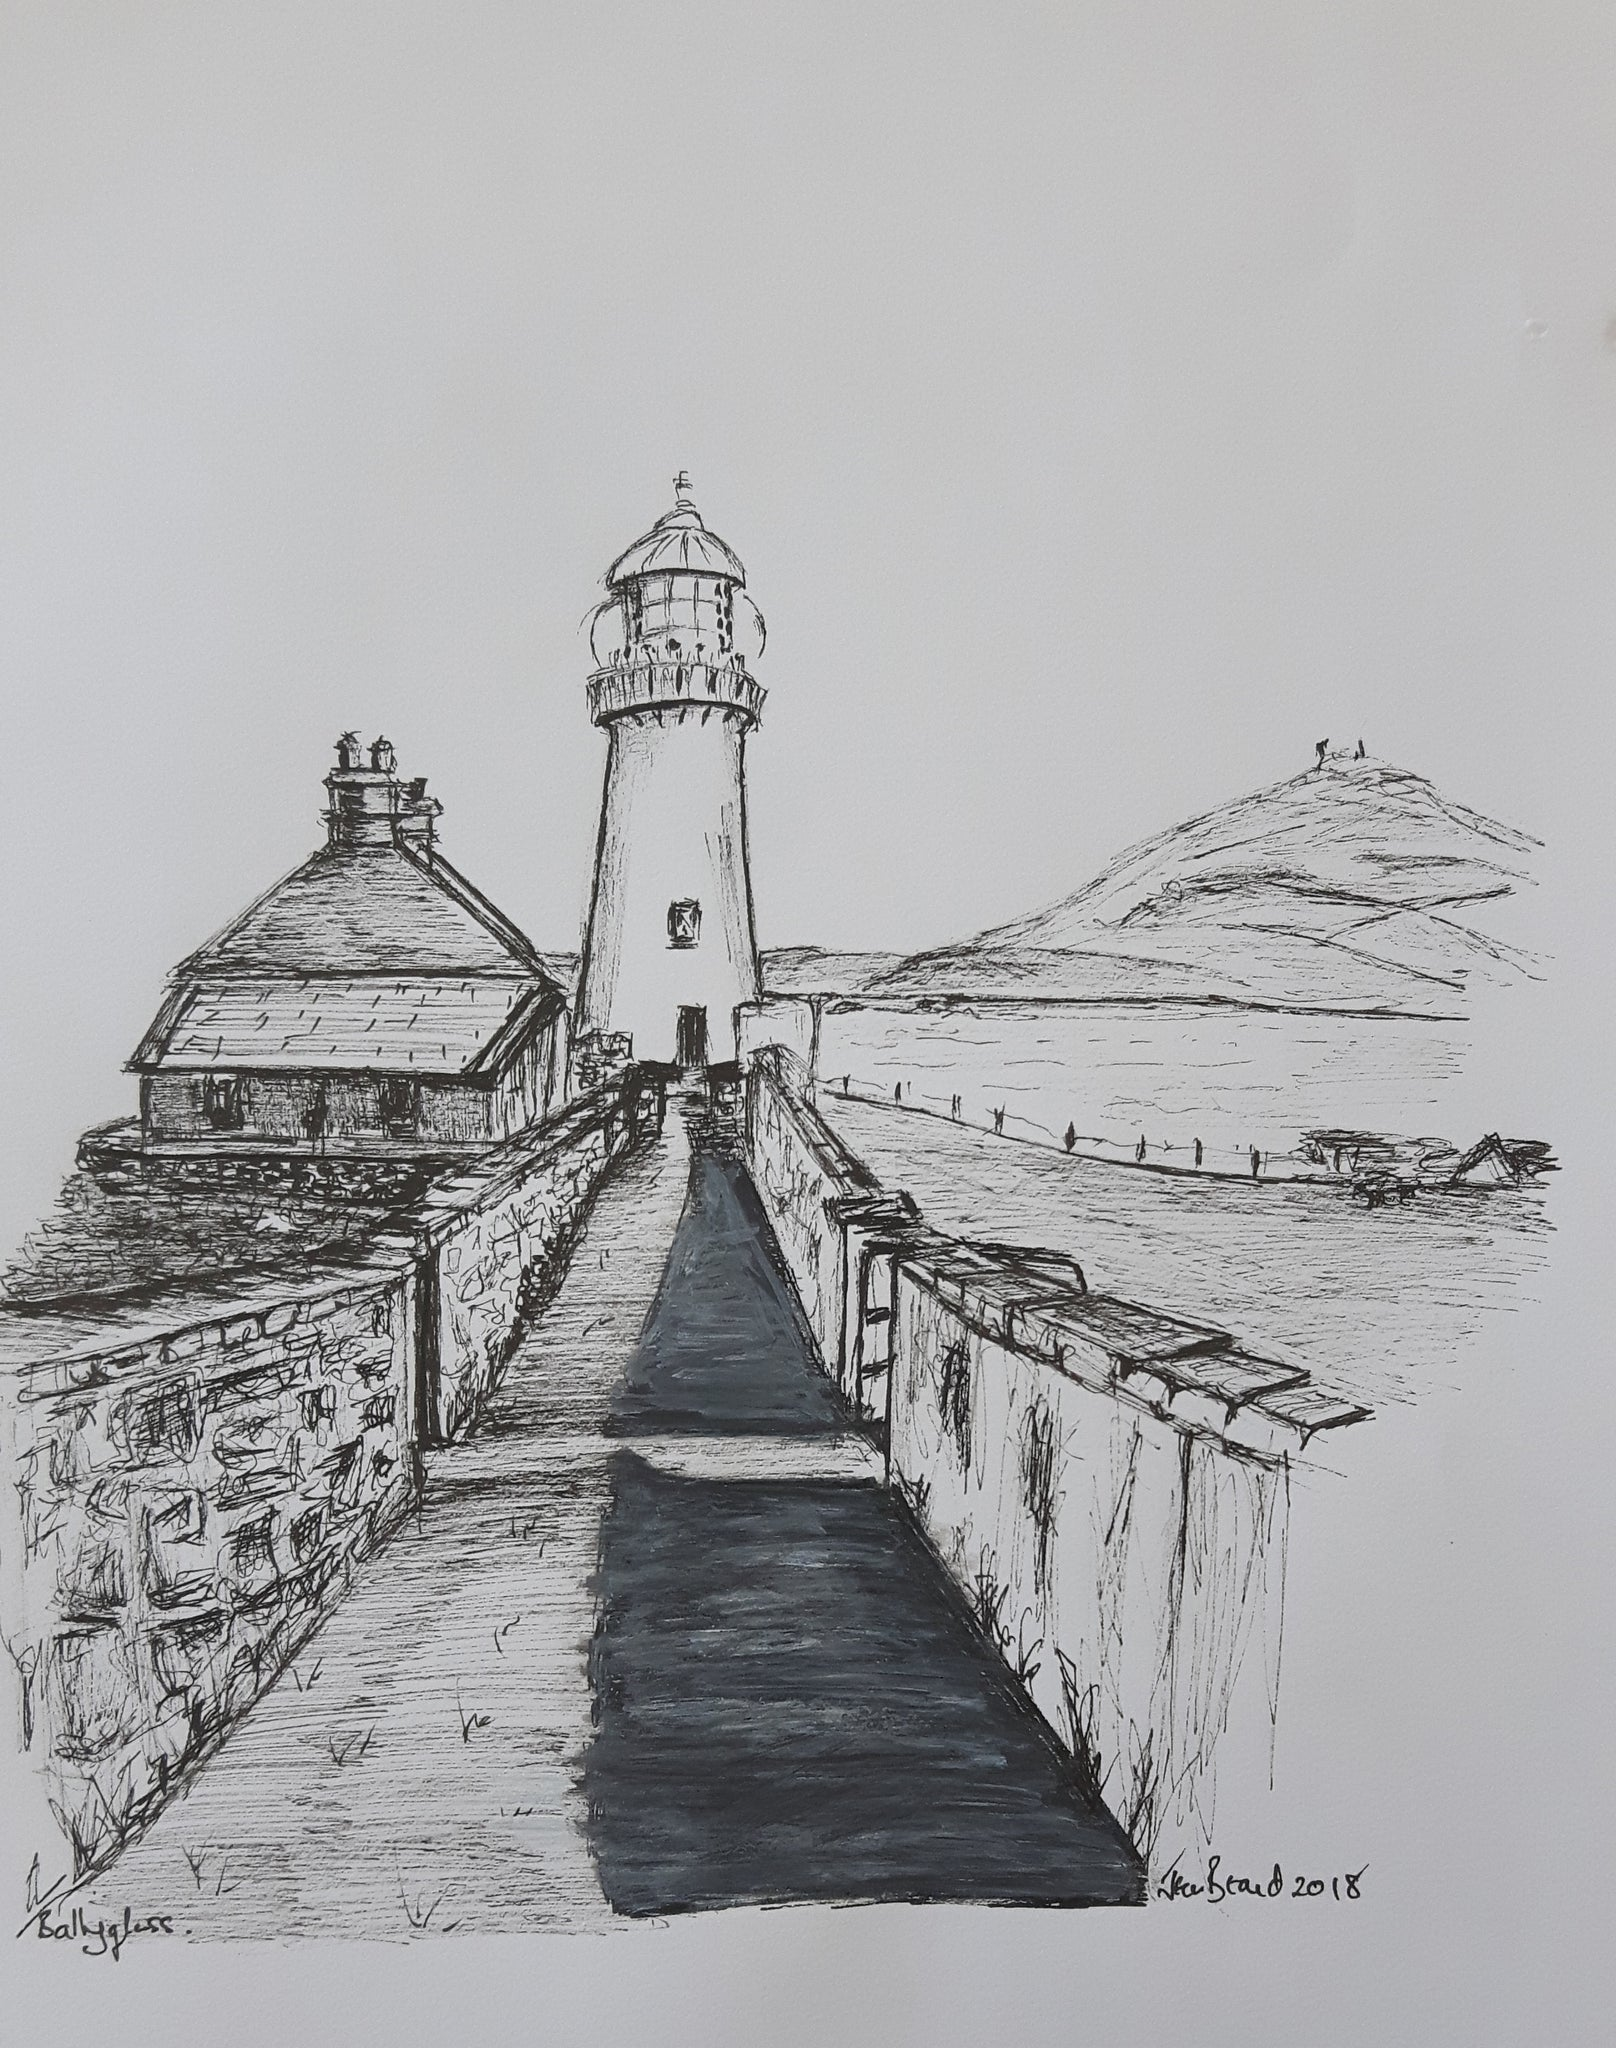 Twelve original black and white drawings click on image to